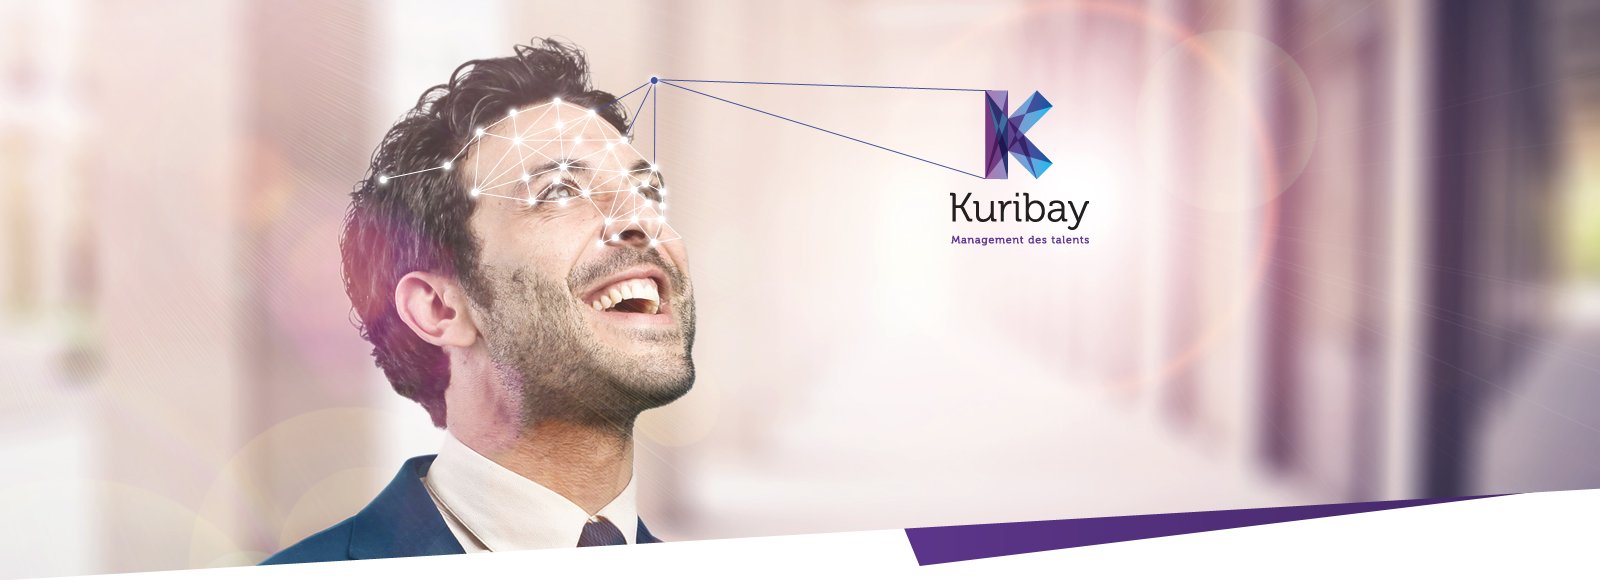 kuribay-cabinet-ressources-humaines